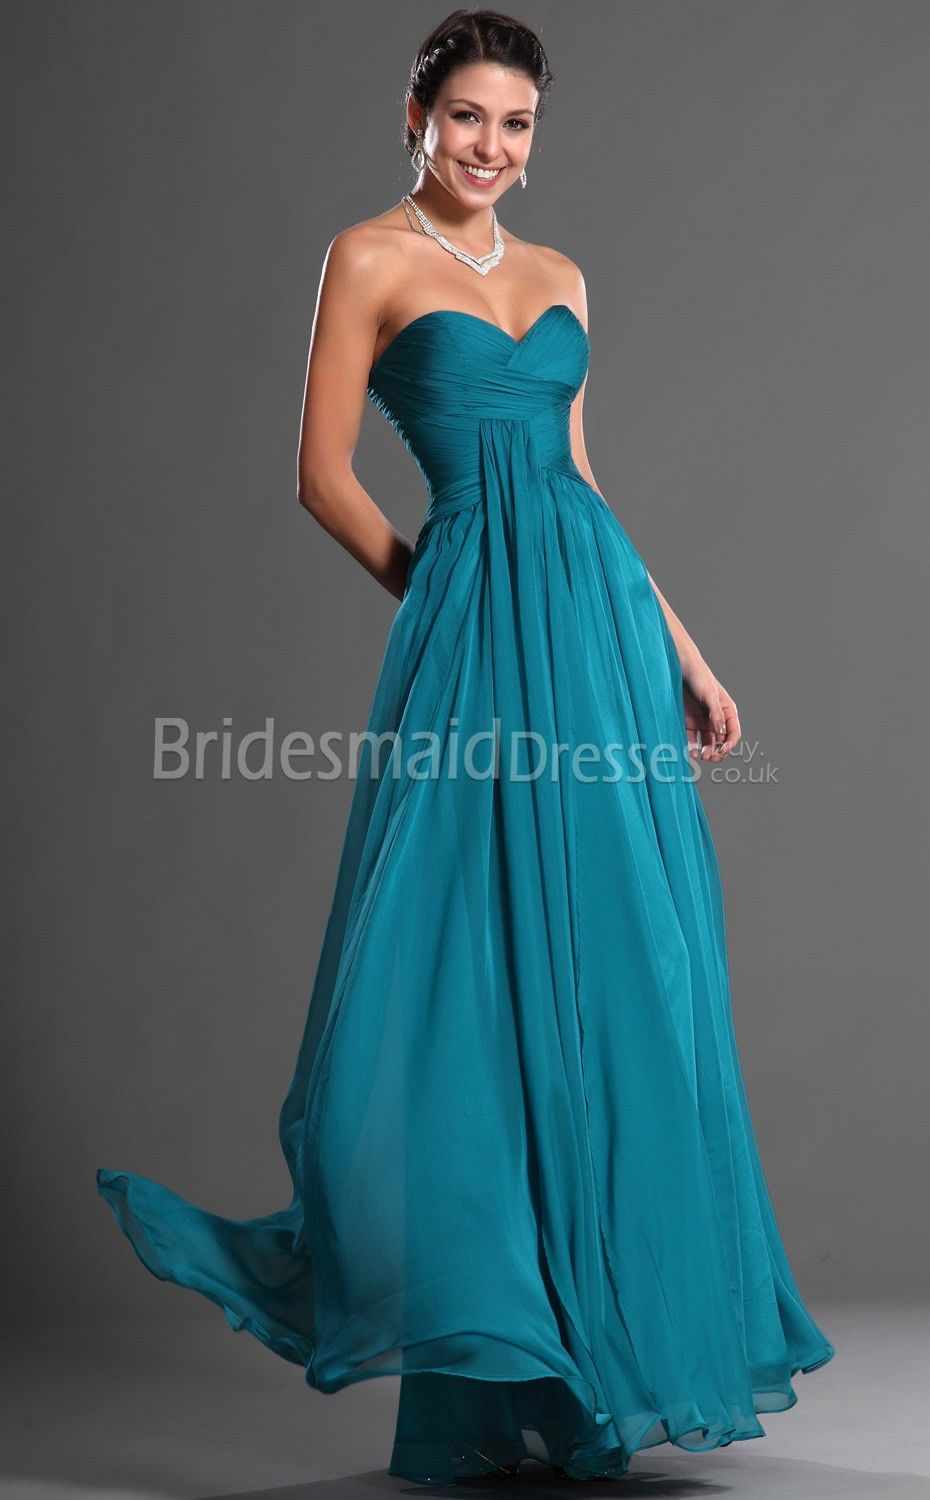 Turquoise bridesmaid dresseslong bridesmaid dresses bridesmaid teal bridesmaid dresses ombrellifo Images